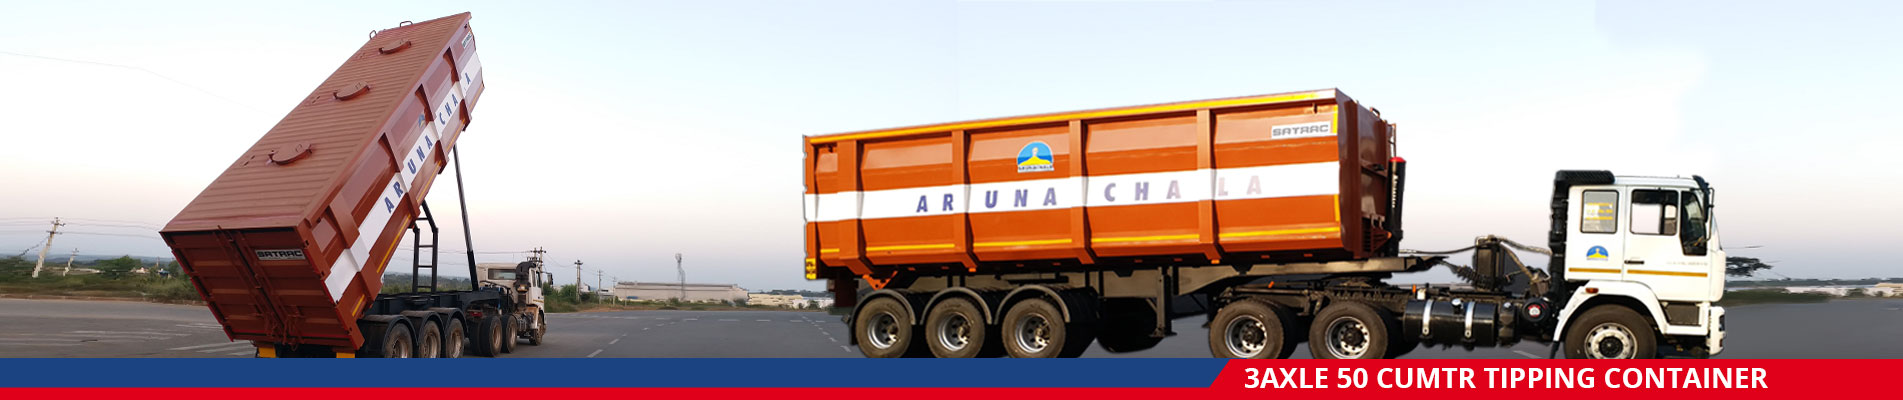 3Axle 50 Cumtr Tipping Container